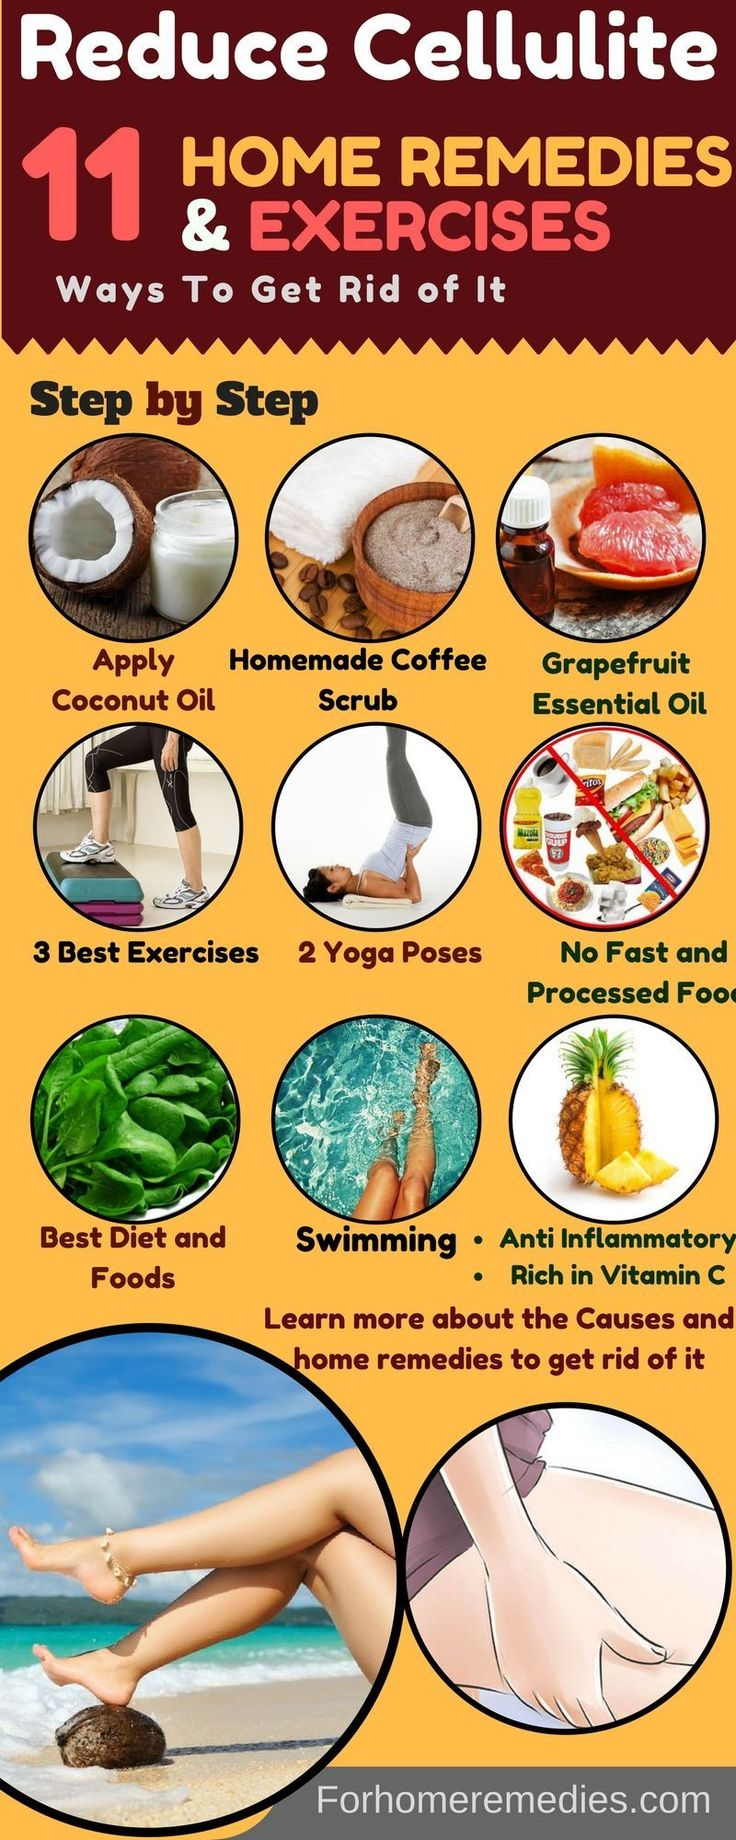 11 Tested Ways to Reduce Cellulite: Home Remedies Get Rid Cellulite. 1.Exercises 2.Yoga Poses 3.Essential Oils 4.Coconut Oil 5.Foam Roller 6.Coffee Scrub 7.Best Food 8.Pineapple,9.Grapefruit Oil 10.Foods to avoid 11.Foam Roller